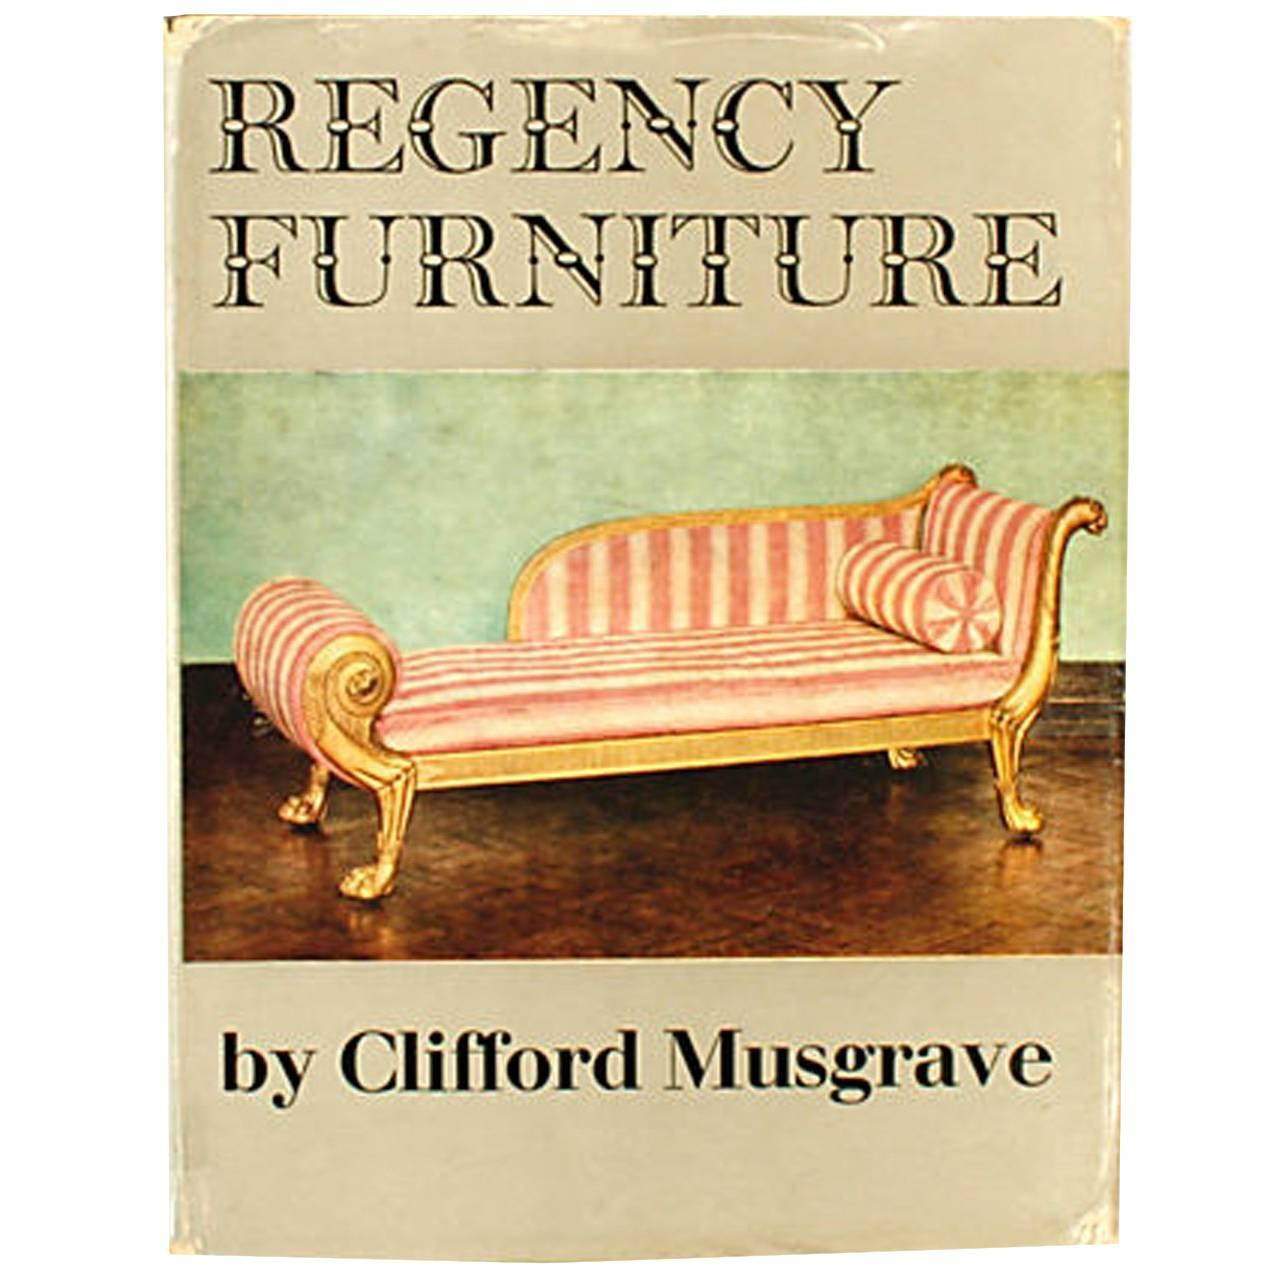 Regency Furniture by Clifford Musgrave, First Edition